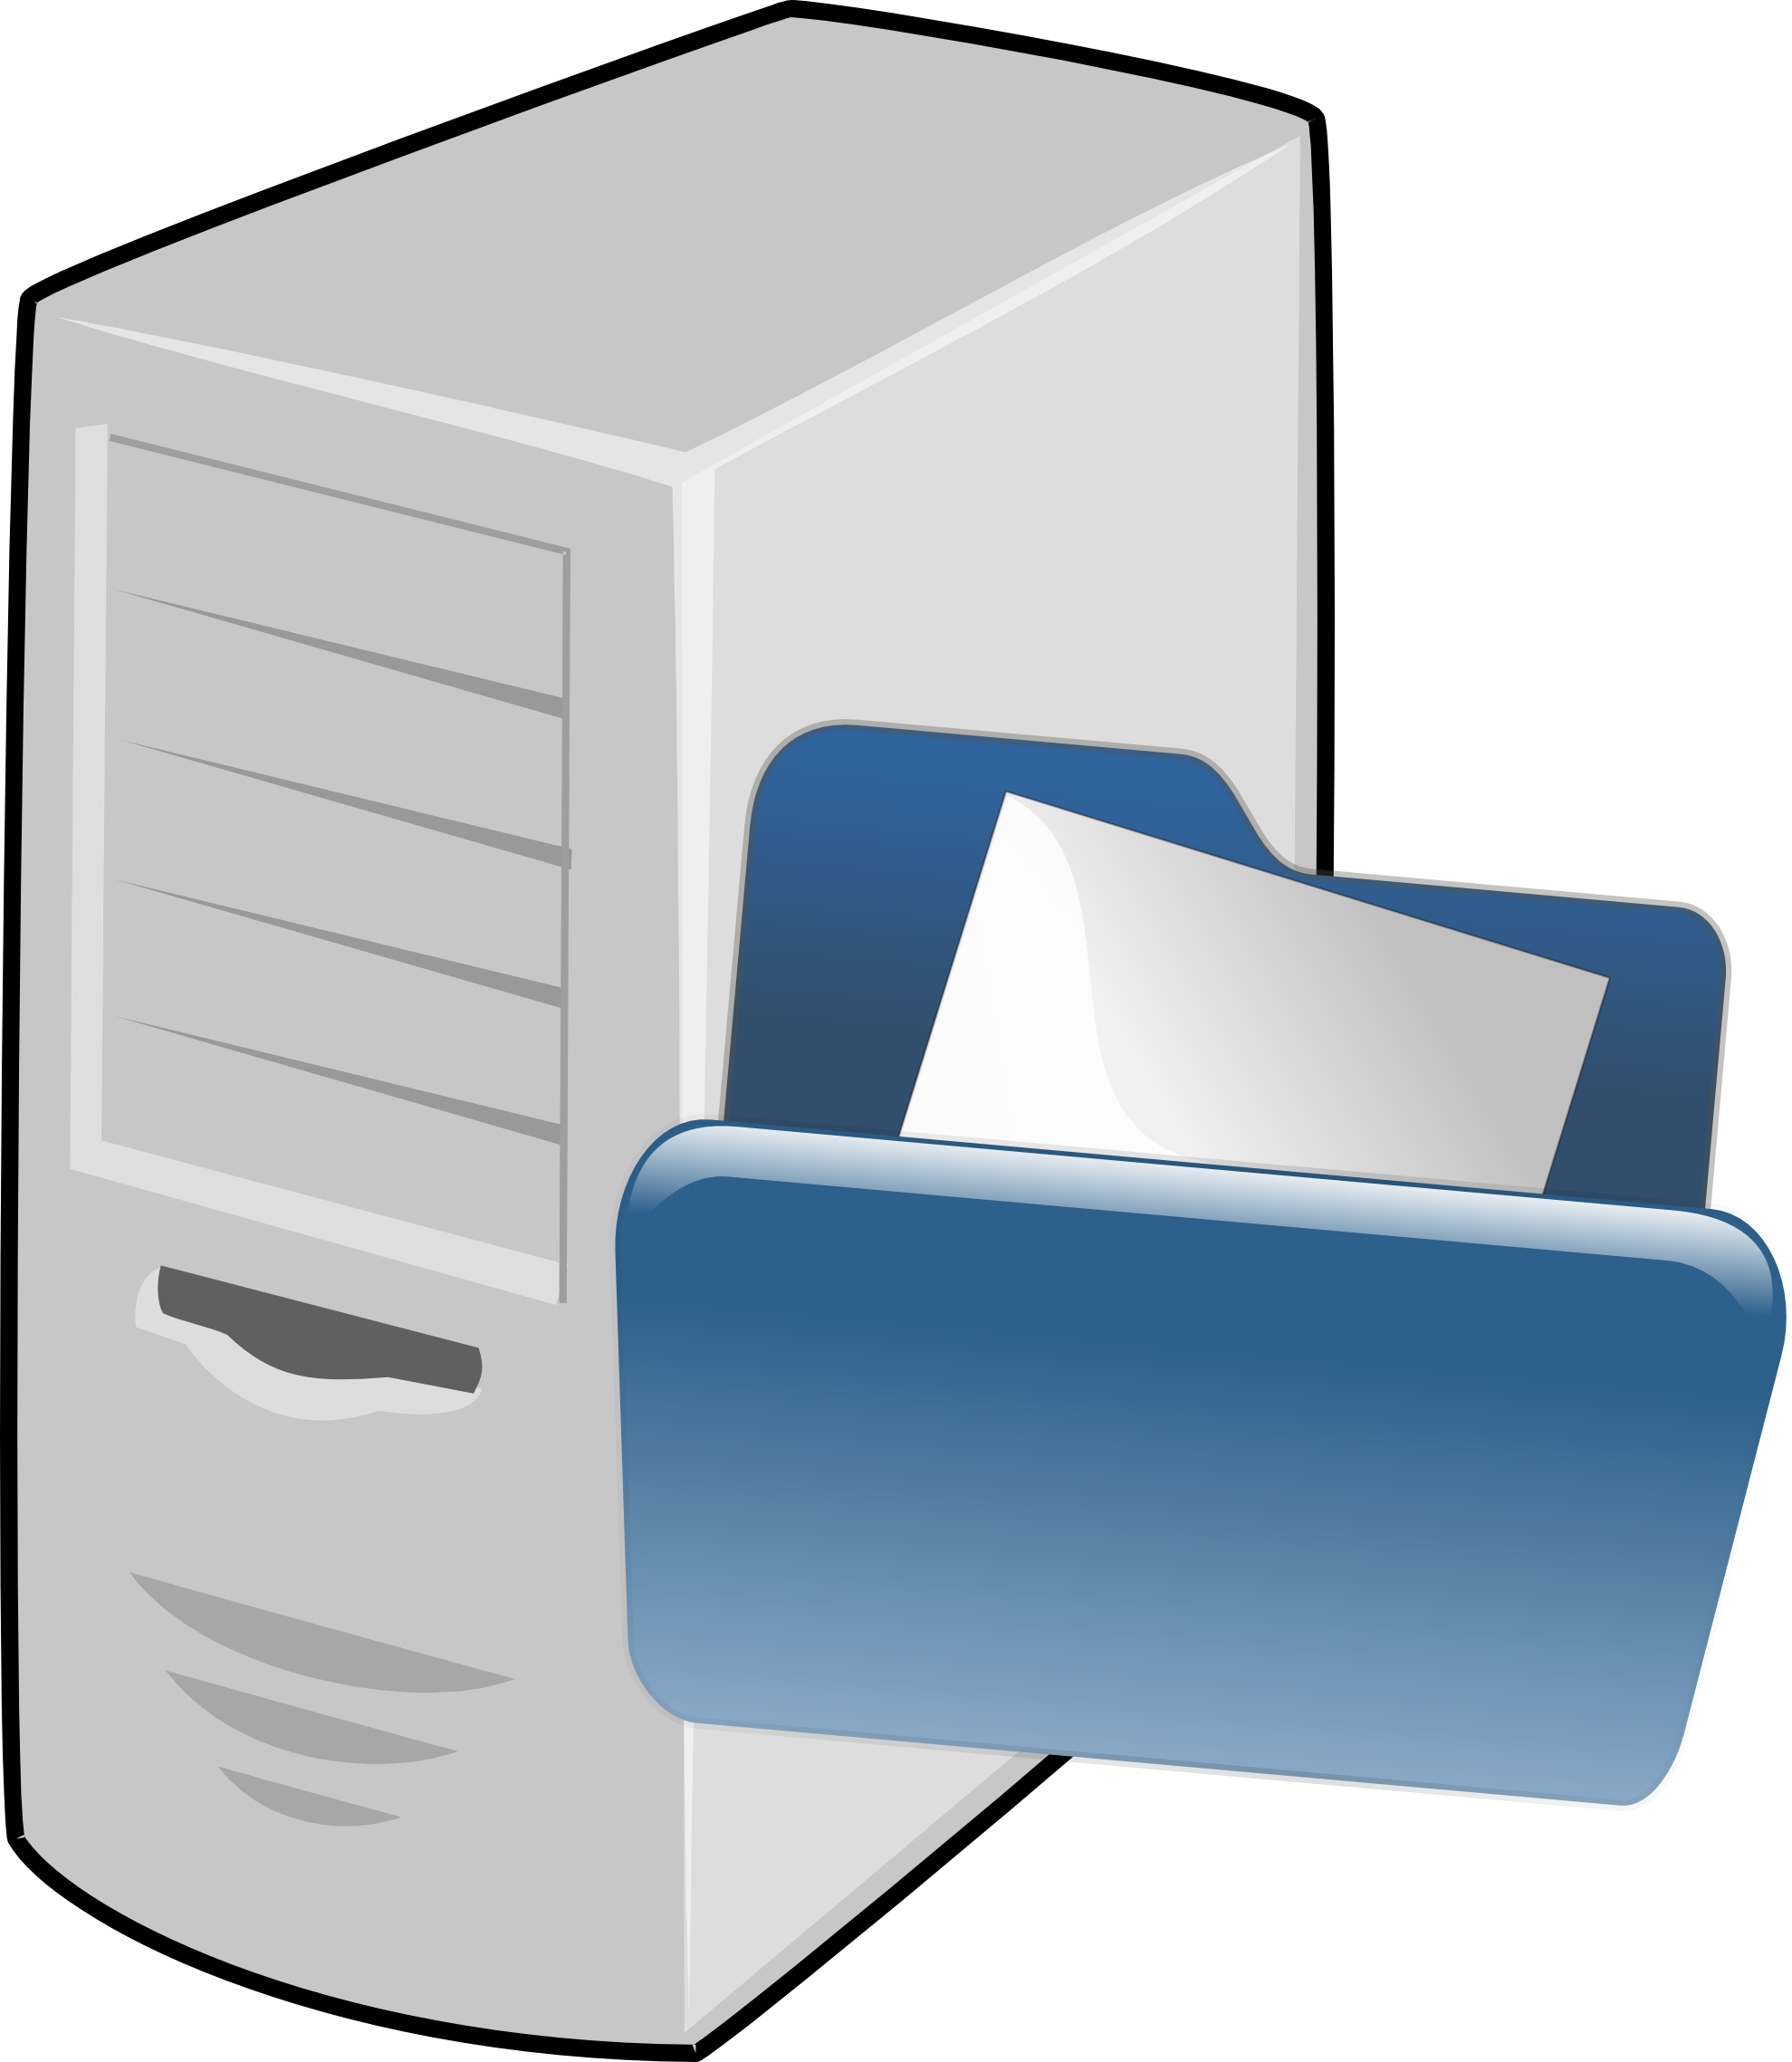 Web Server Icon Png   Clipart Best